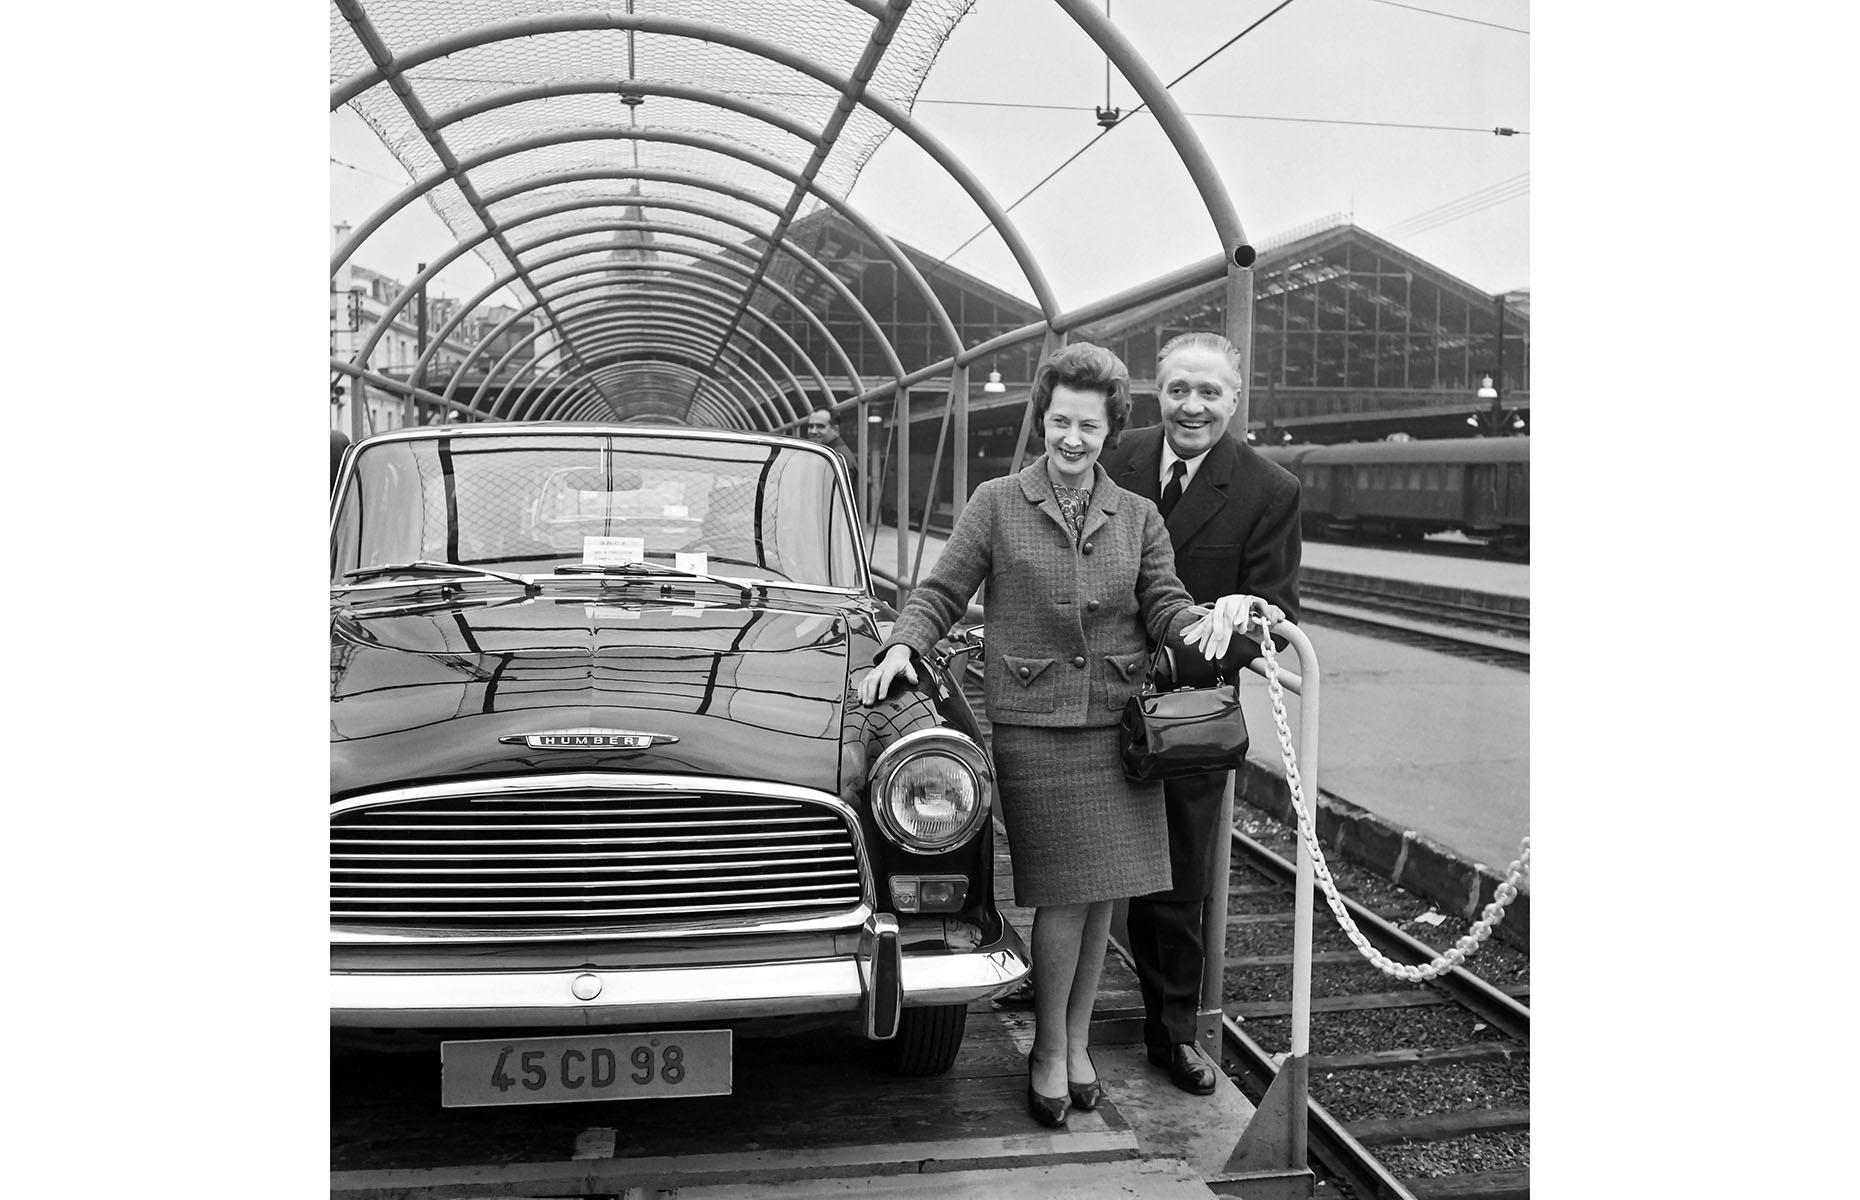 Slide 23 of 32: Although construction on the Channel Tunnel, known as Eurotunnel, didn't begin until 1988, plans to build such a tunnel emerged as early as 1802. Here, British Transport Minister Barbara Castle is photographed with the French SNCF (France's national state-owned railway company) CEO André Segalat on 29 October 1966. They're standing onboard a train-car, showcasing how the transport through the tunnel would work, some 30 years before it actually happened.